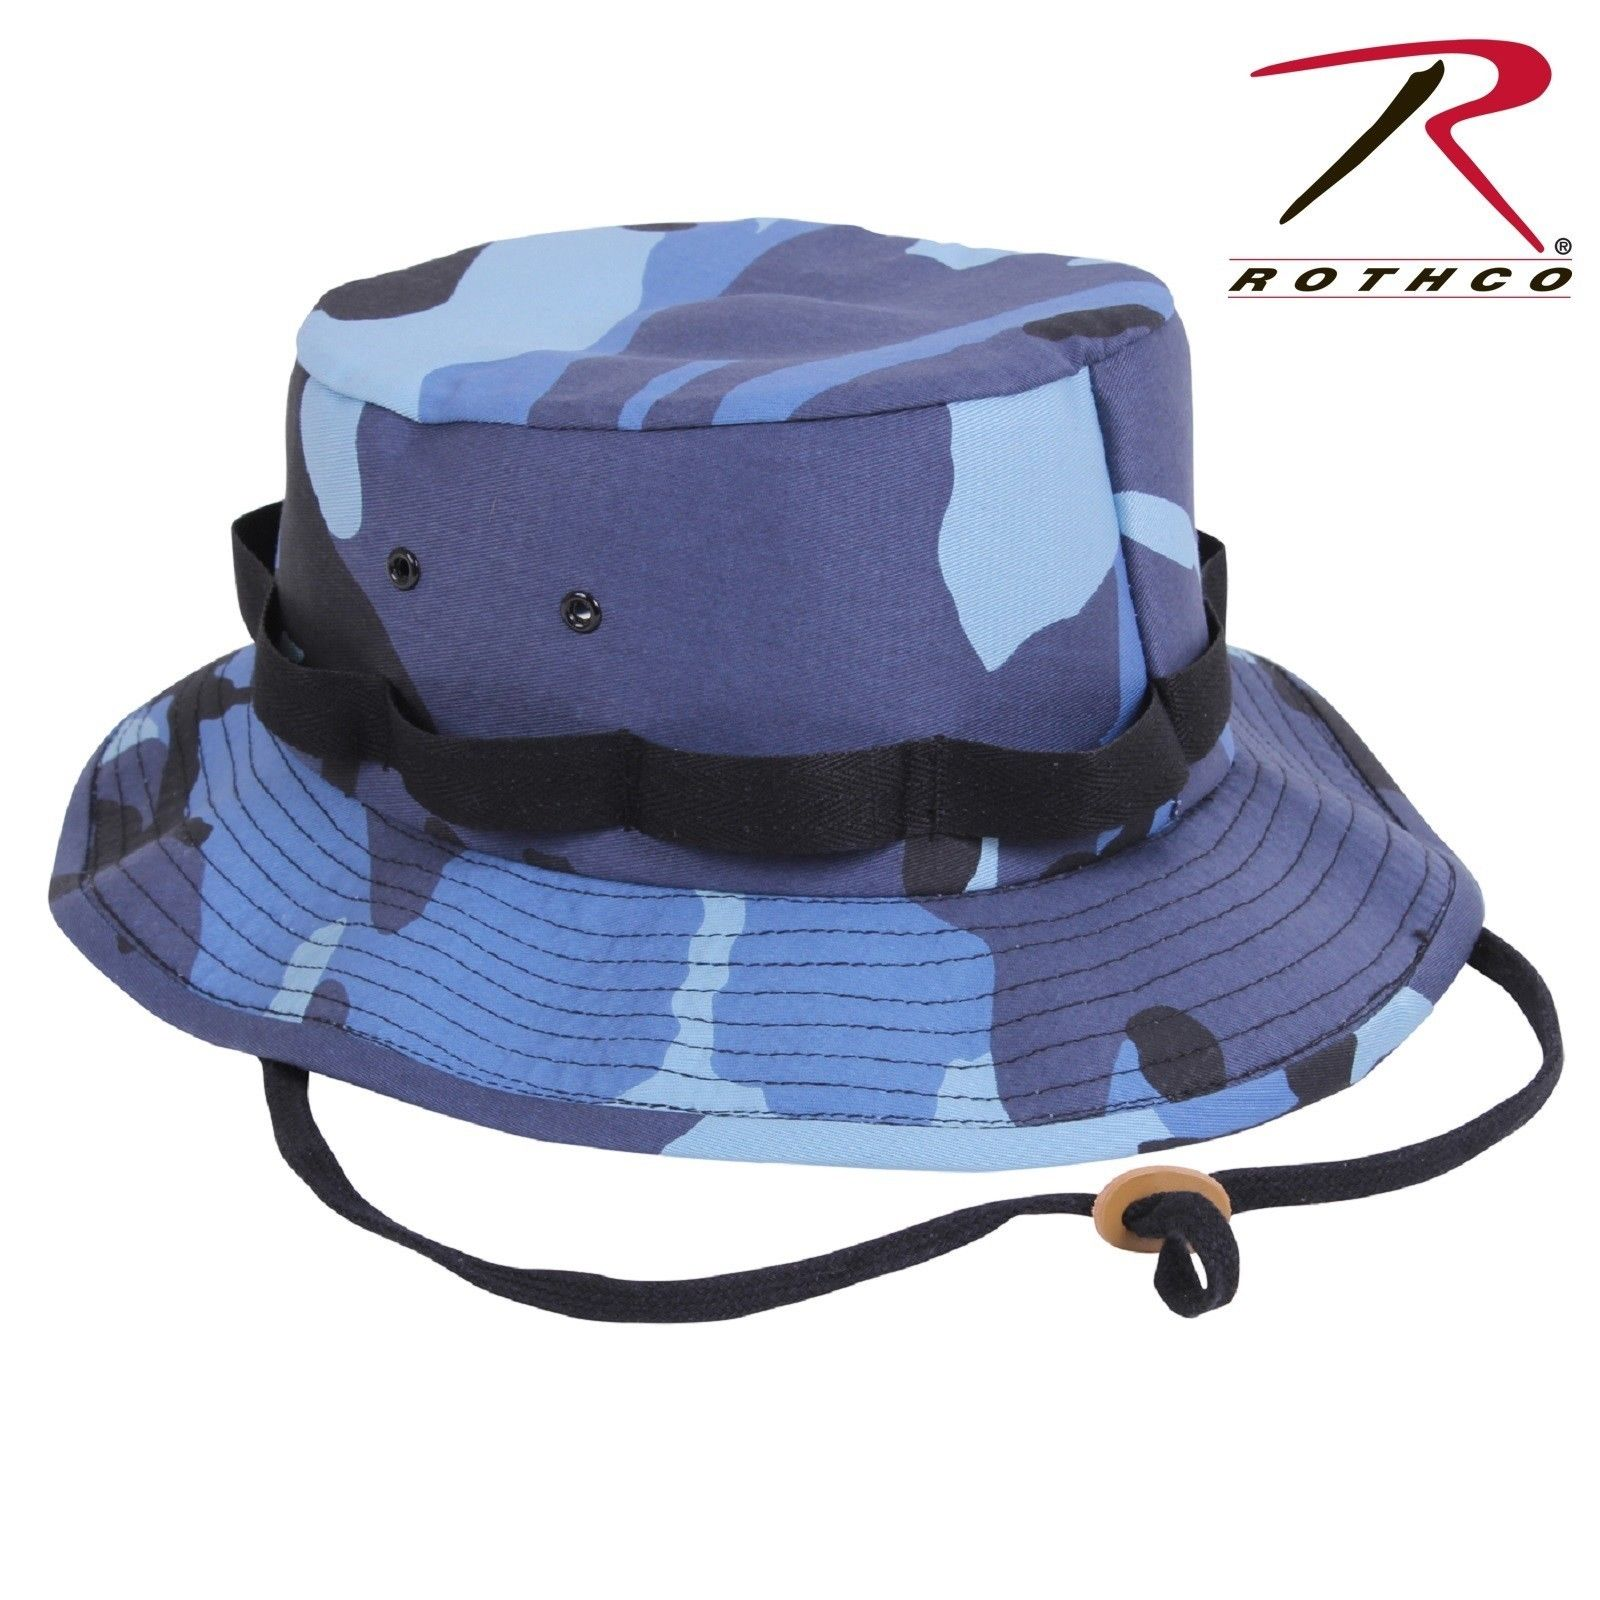 8673200ee19 Mens Rothco Sky Blue Camo Camouflage Jungle Boonie Hat. Zoom. Move your  mouse over image or click to enlarge